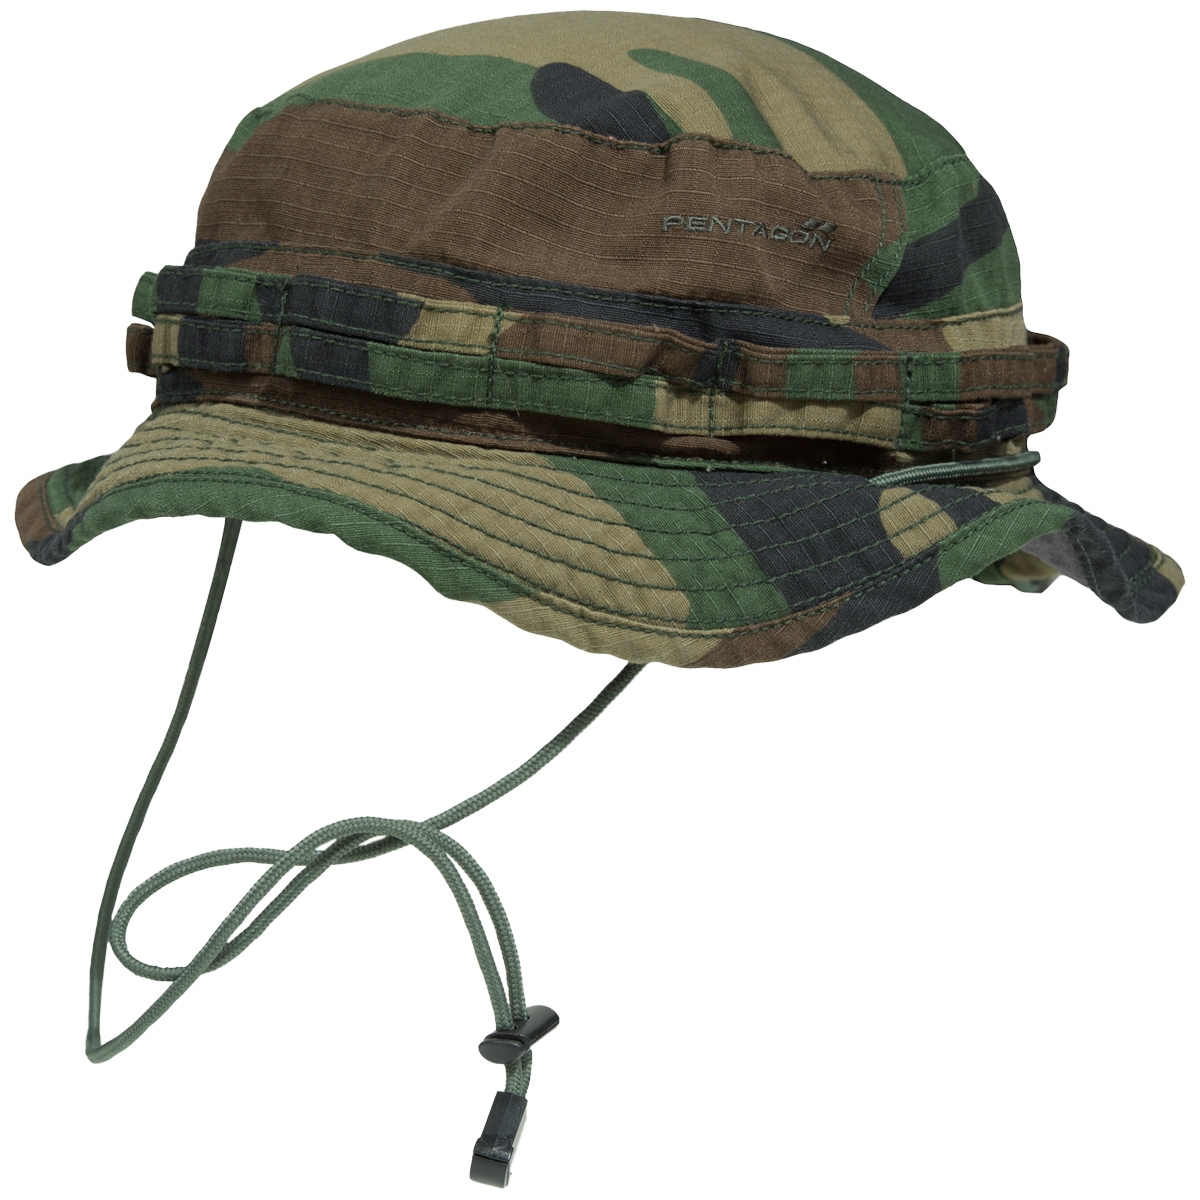 Details about Pentagon Babylon Boonie Hat Hiking Trekking Outdoor Fishing  Jungle Woodland Camo 9cc2b0a3e5a8